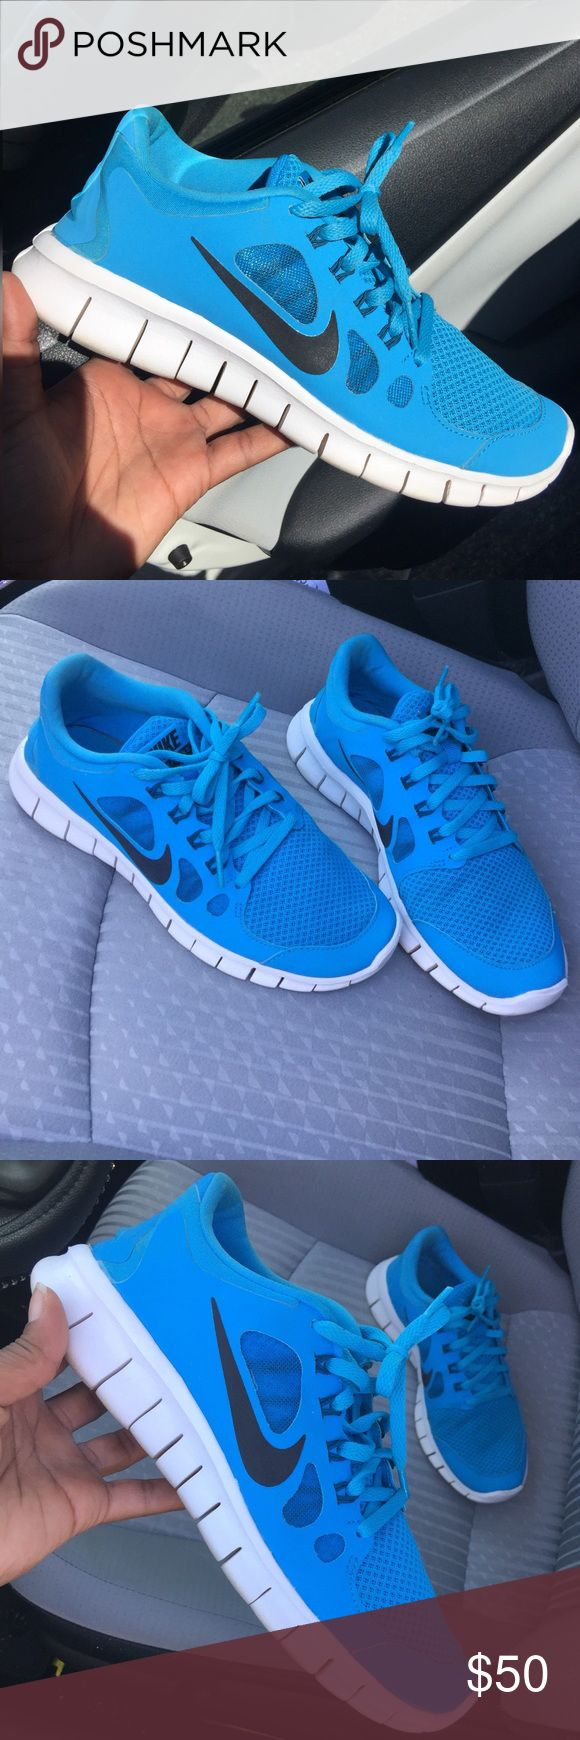 Nike Free 5.0, Blue, 5.5Y Nike Free 5.0, Blue, 5.5Y, UK 5, EUR 38. Gorgeous blue sneakers, preloved condition. Make these yours today! The sizing is youth but I normally wear size 6 in Nike women and these fit me with no issue. I just don't reach for these as often anymore. Nike Shoes Sneakers